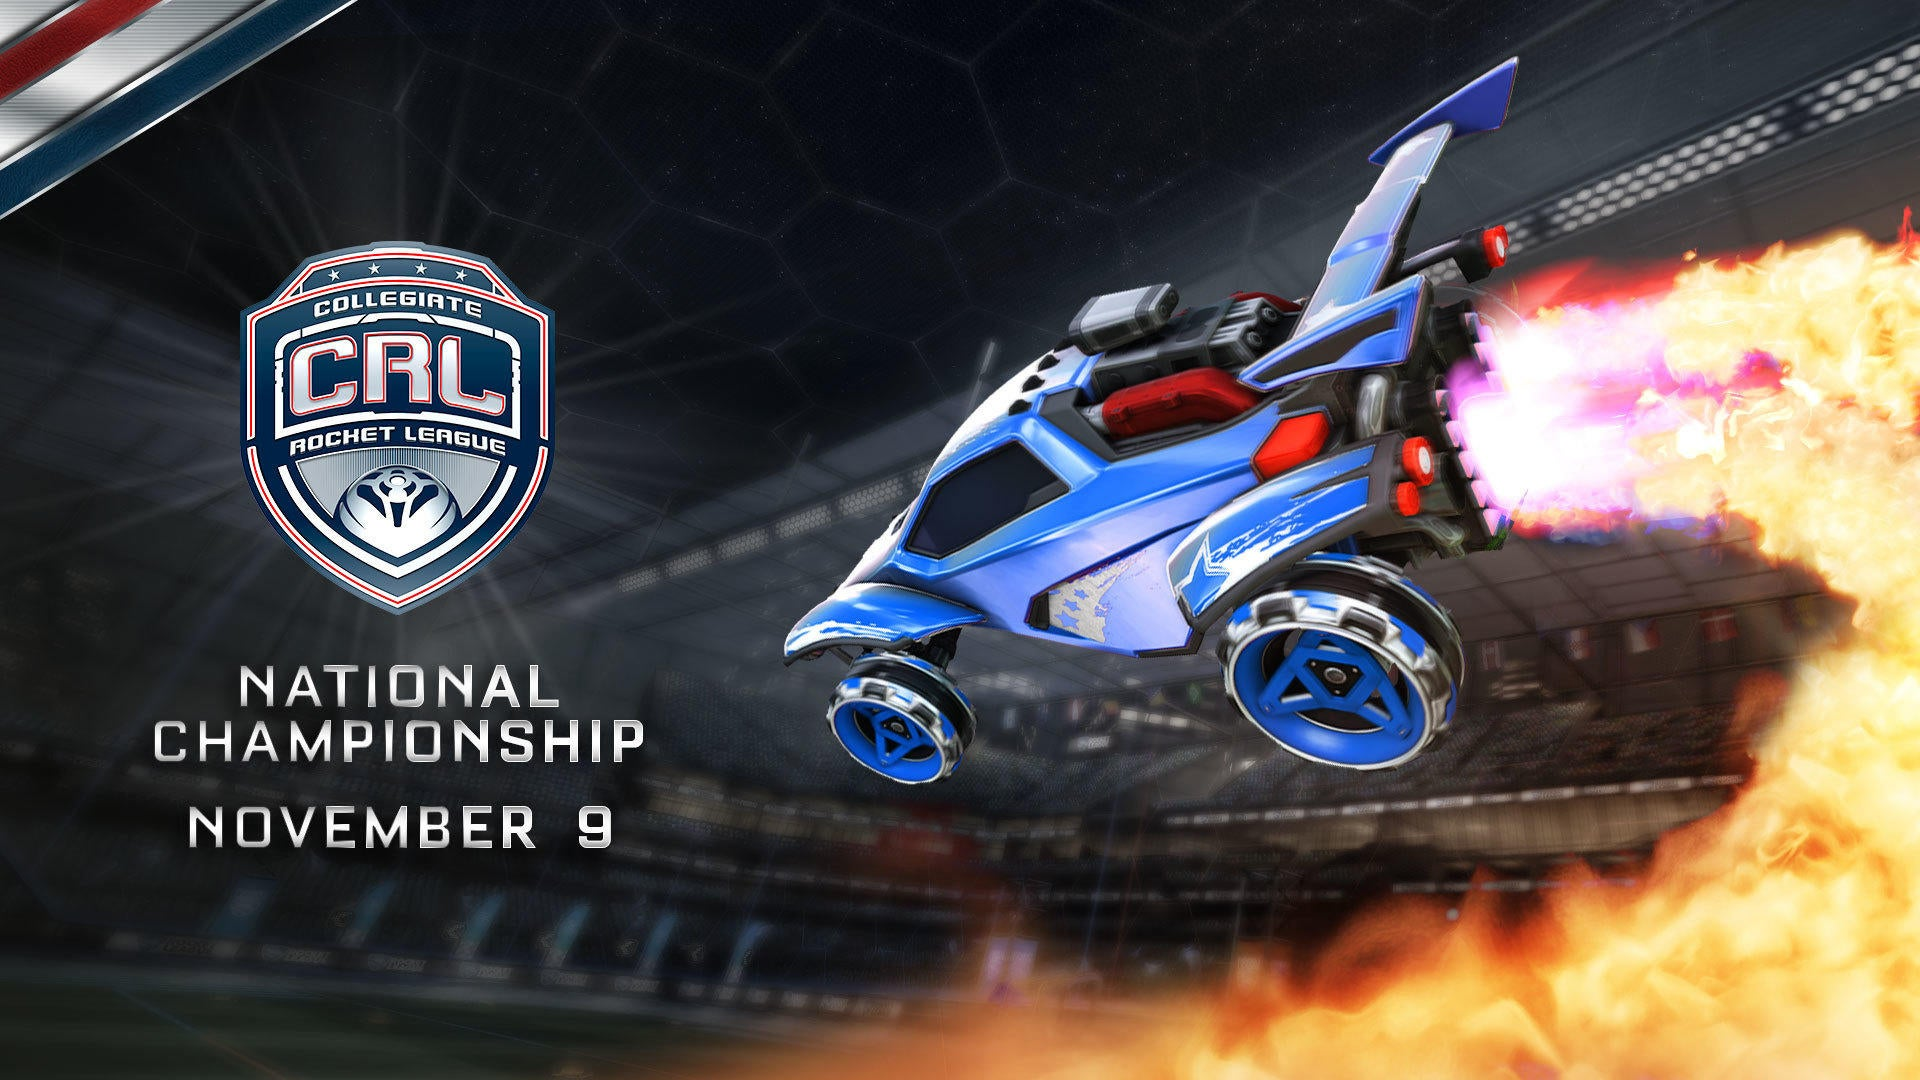 Fall 2019 Collegiate Rocket League National Championship Tickets are on sale NOW! Image